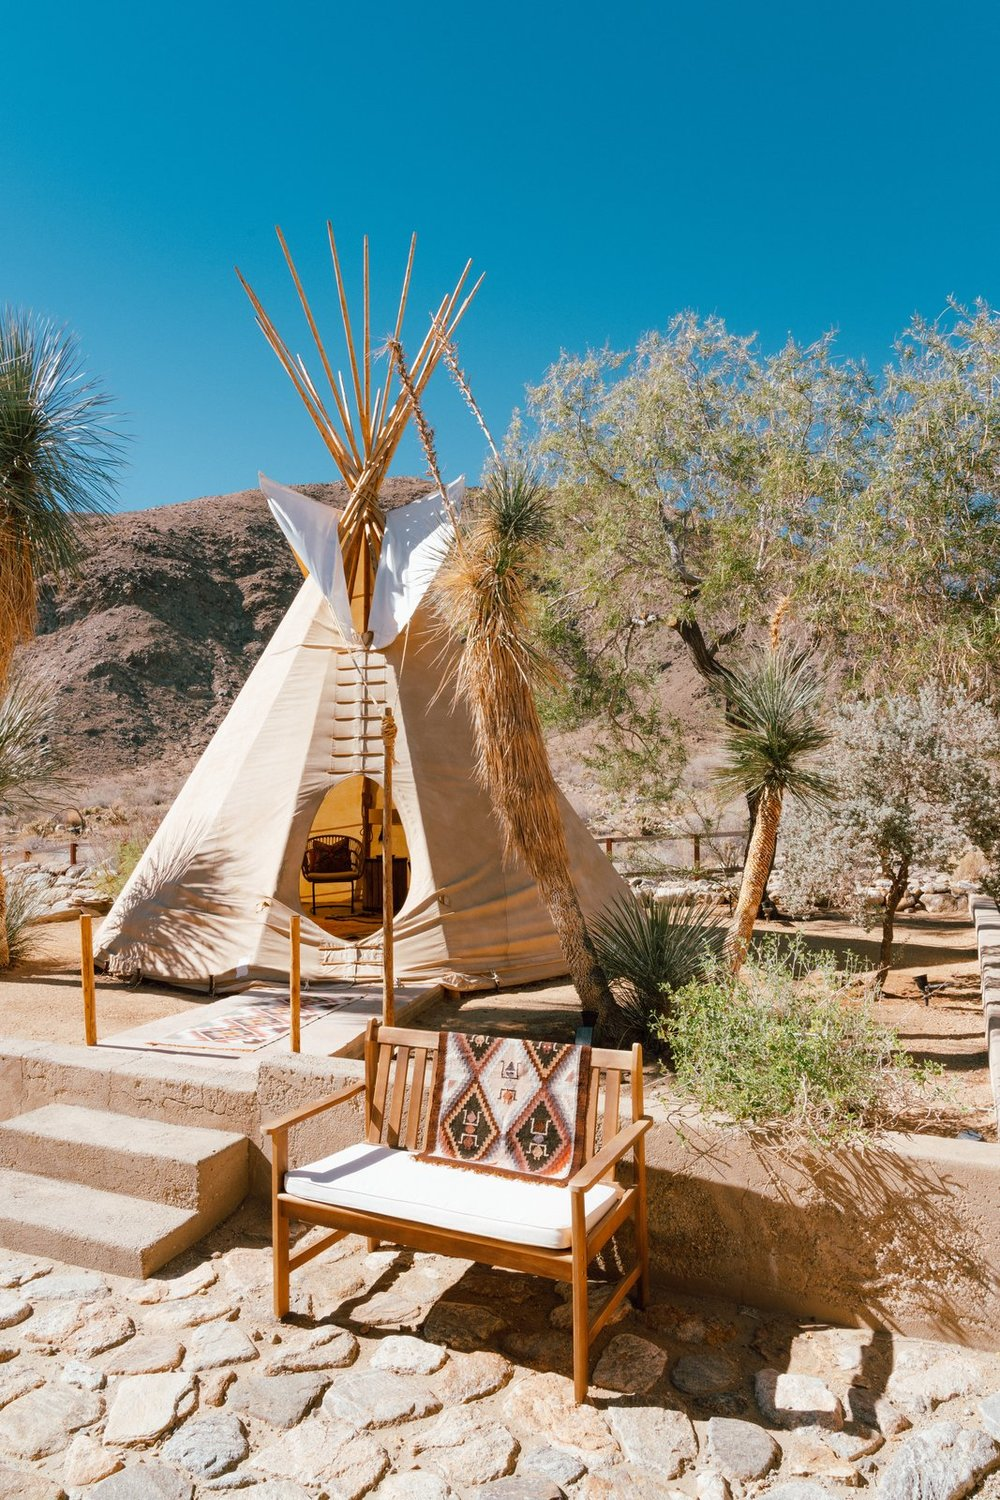 """""""The teepee is 26' canvas with pine lodge poles. It's simple in construction as it was originally intended to be a nomadic dwelling. It is extremely reliable in the high desert winds and even great in the rain. We have a small fire pit in there to keep it toasty on cool winter evenings. It's one my favorite places on the property."""" (Tim Melideo)"""